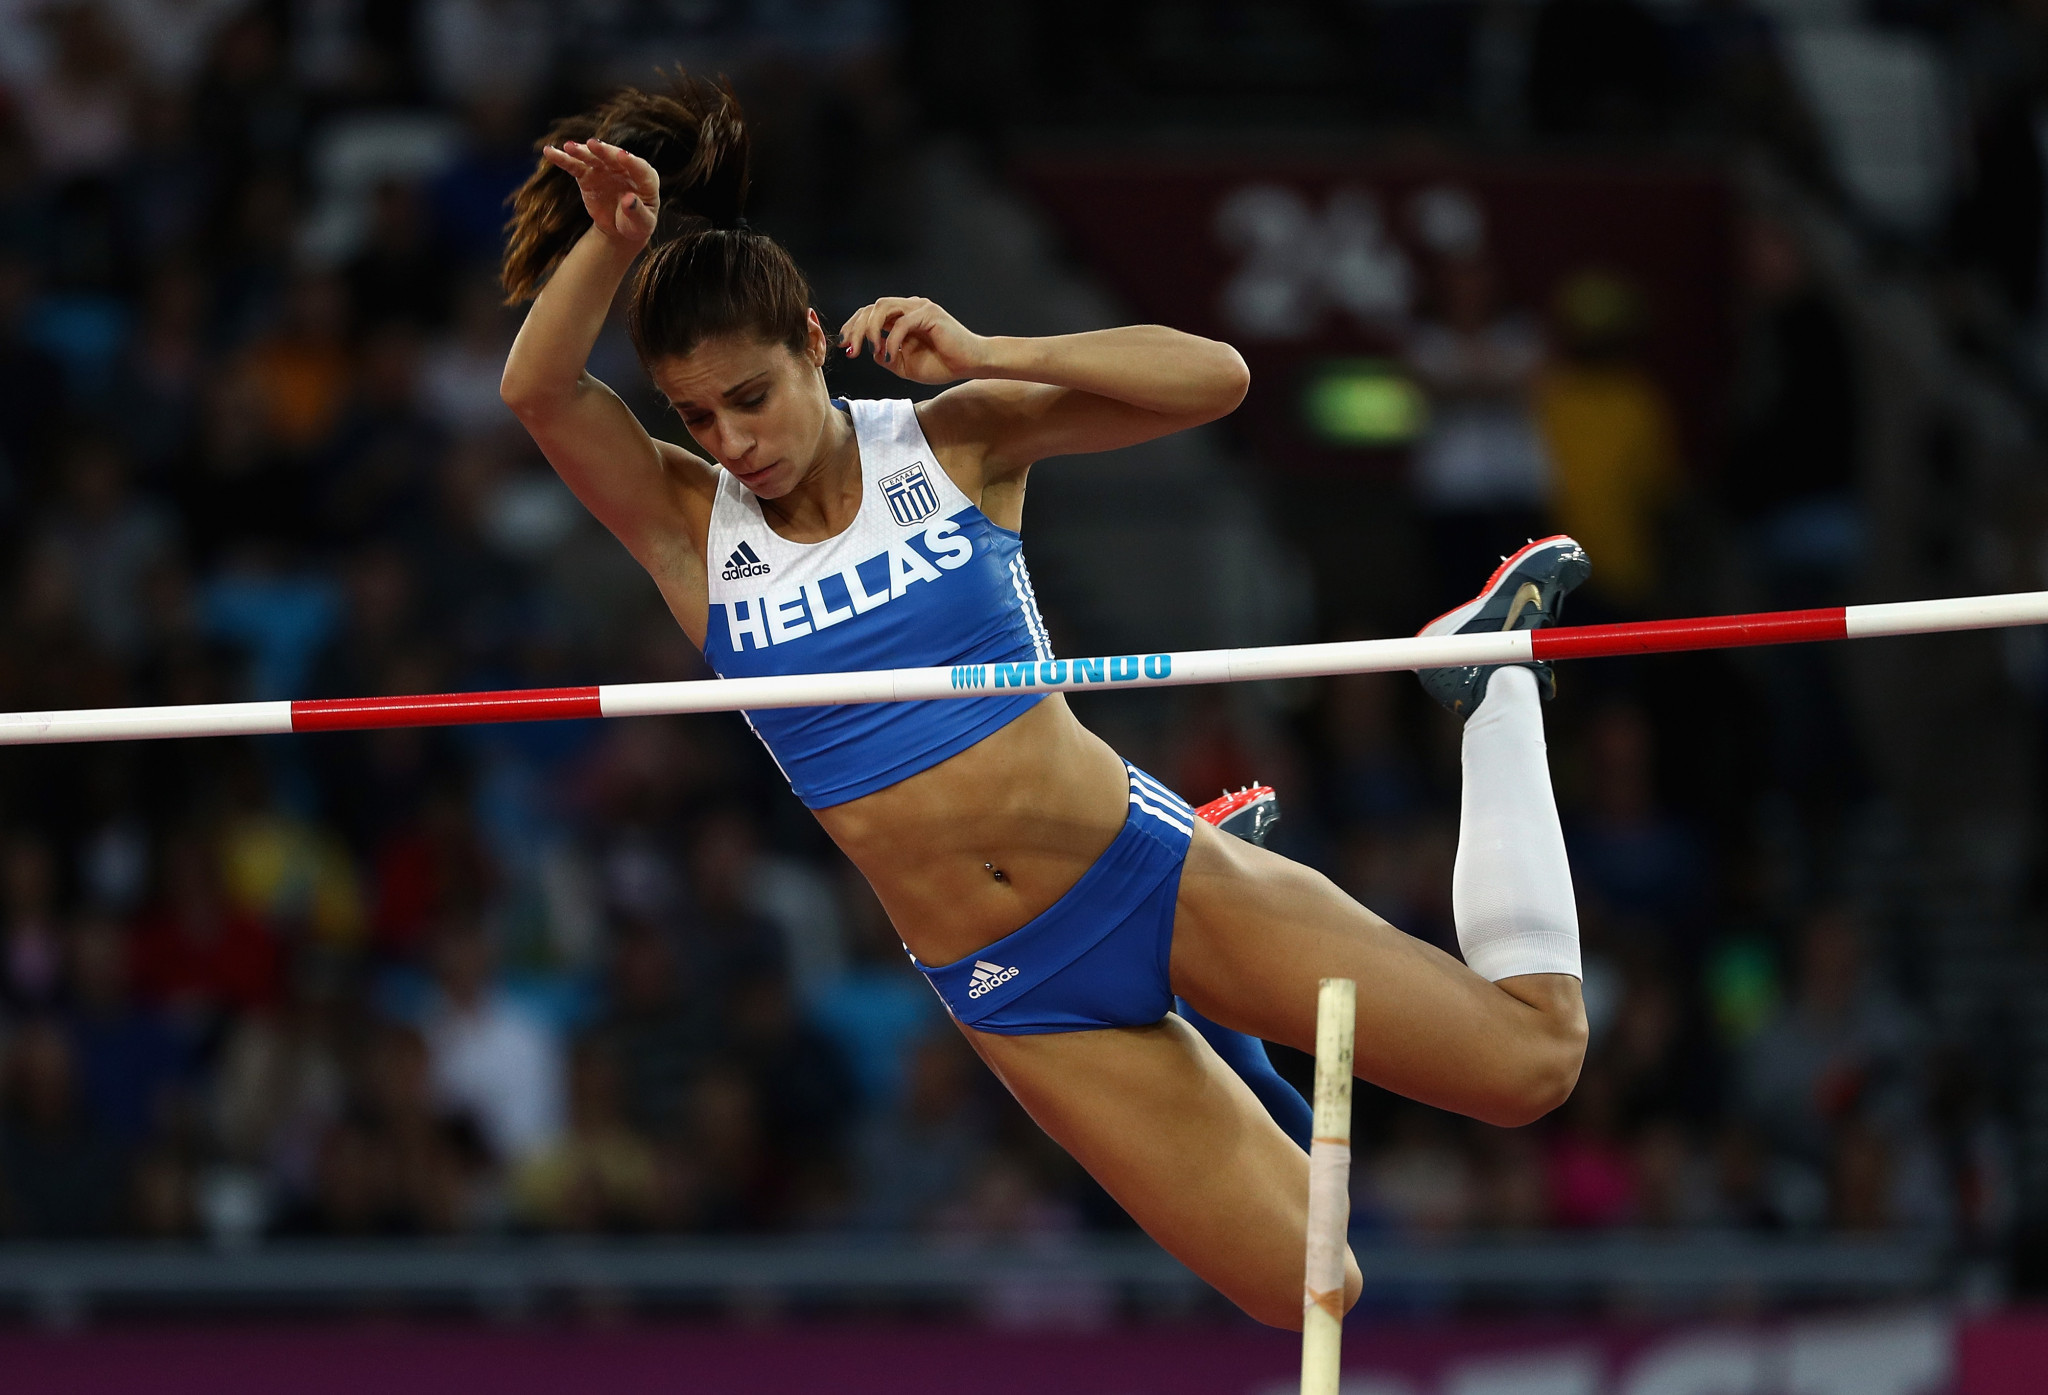 Greek pole vaulter Ekaterini Stefanidi was crowned the women's athlete of the year ©Getty Images